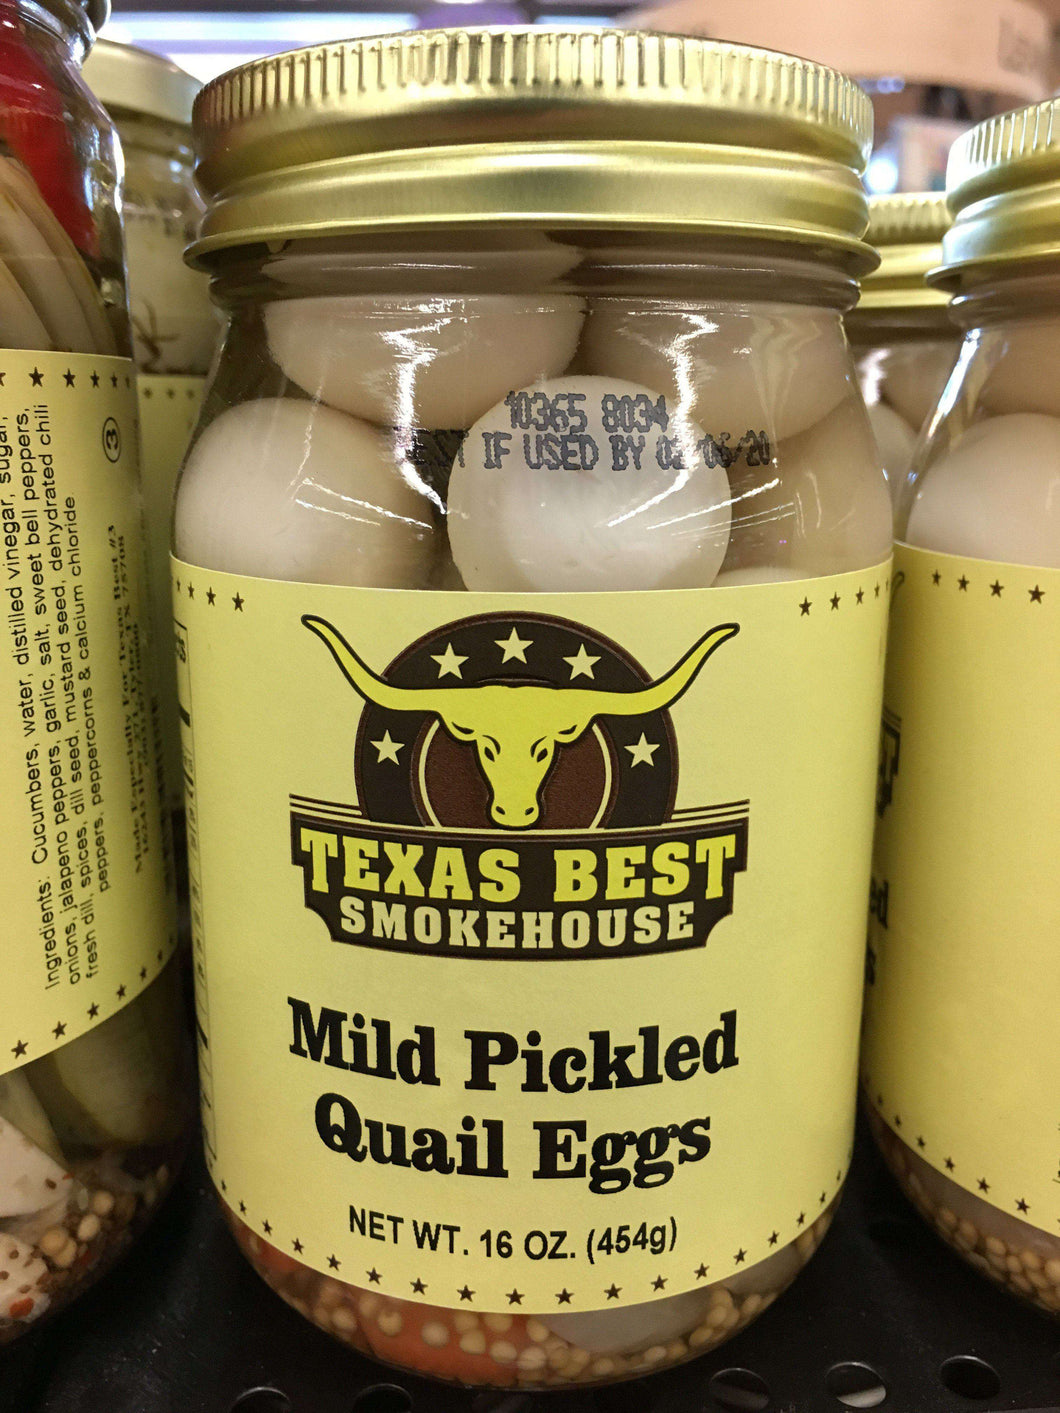 Mild Pickled Quail Eggs 16oz